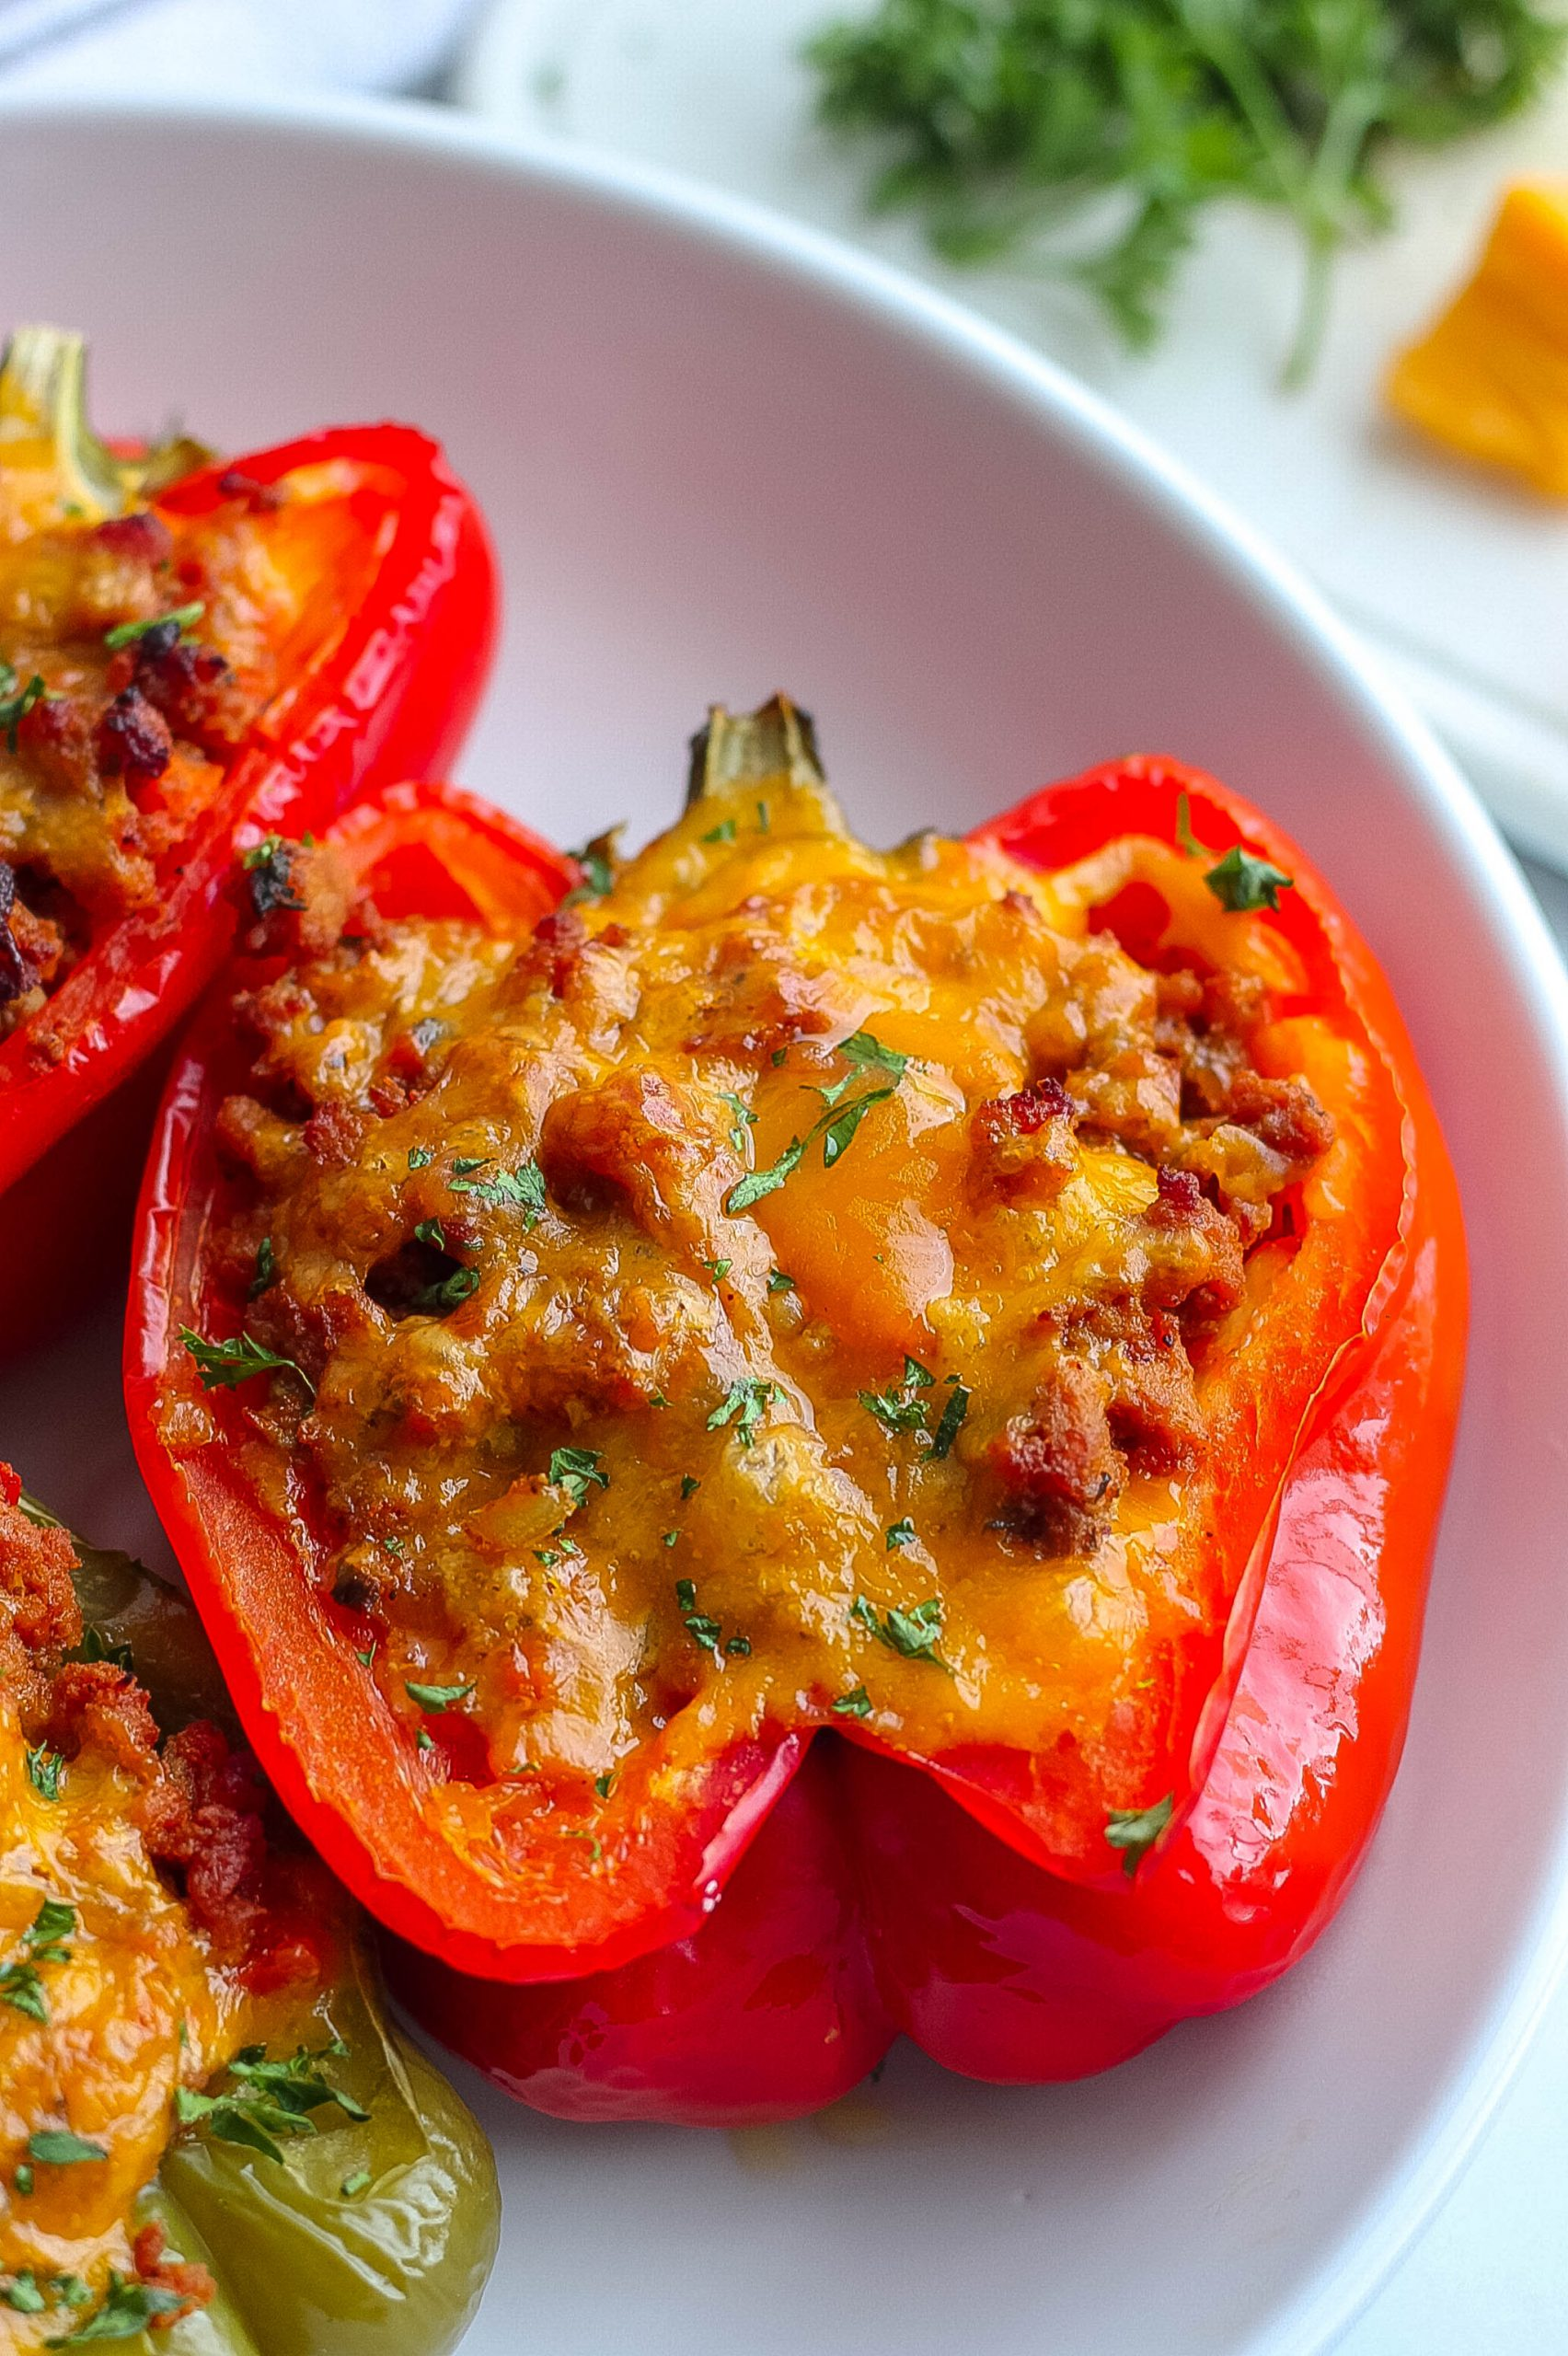 peppers stuffed with turkey sloppy joes